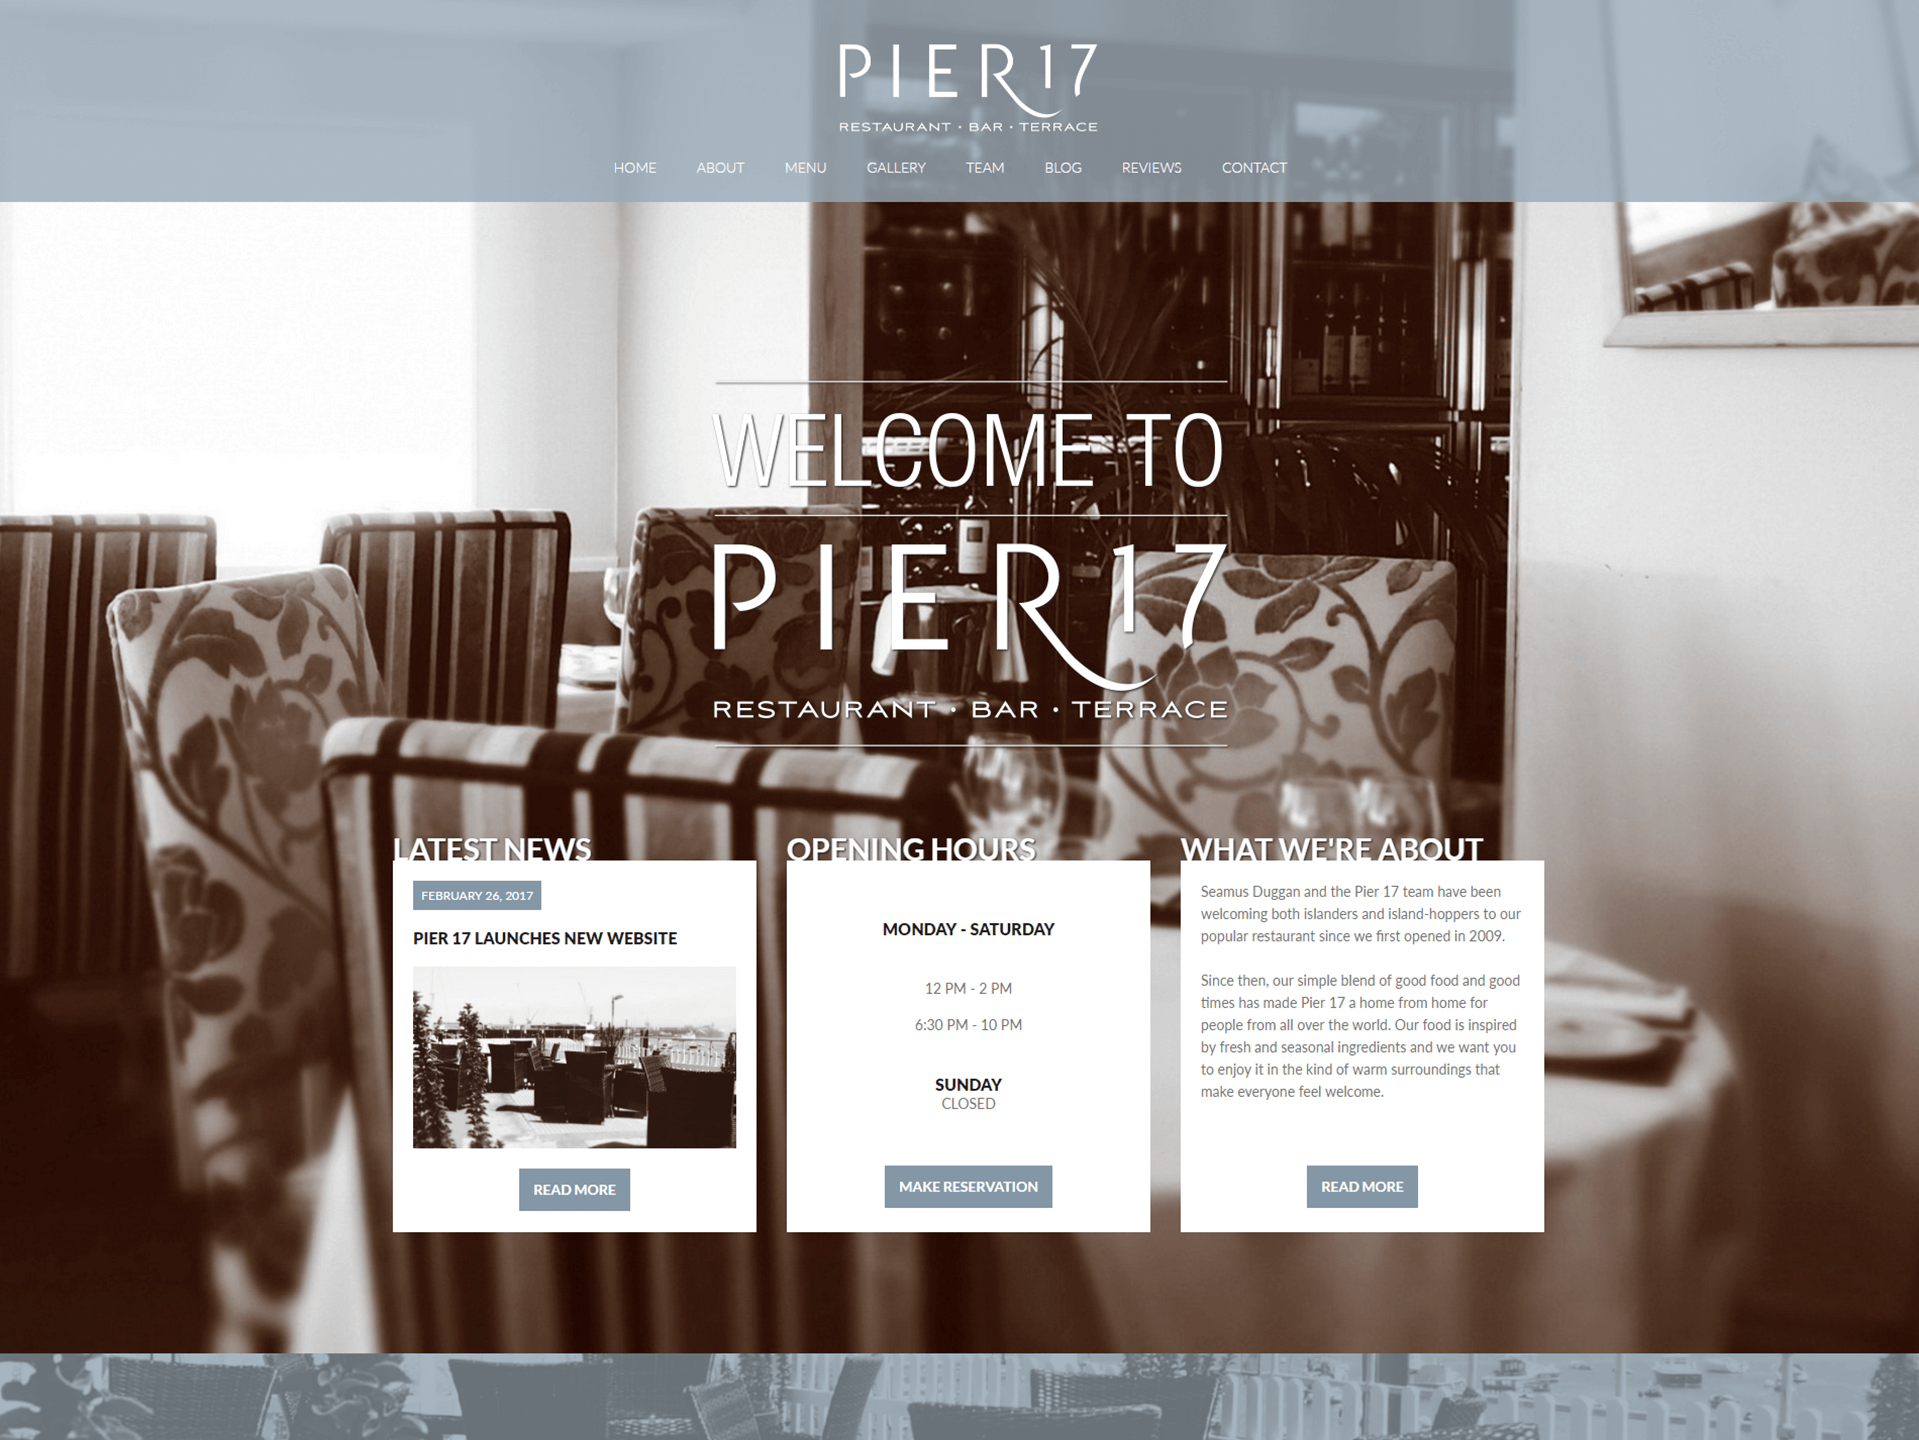 Pier 17 Restaurant - Guernsey - Website Design & Development - Home